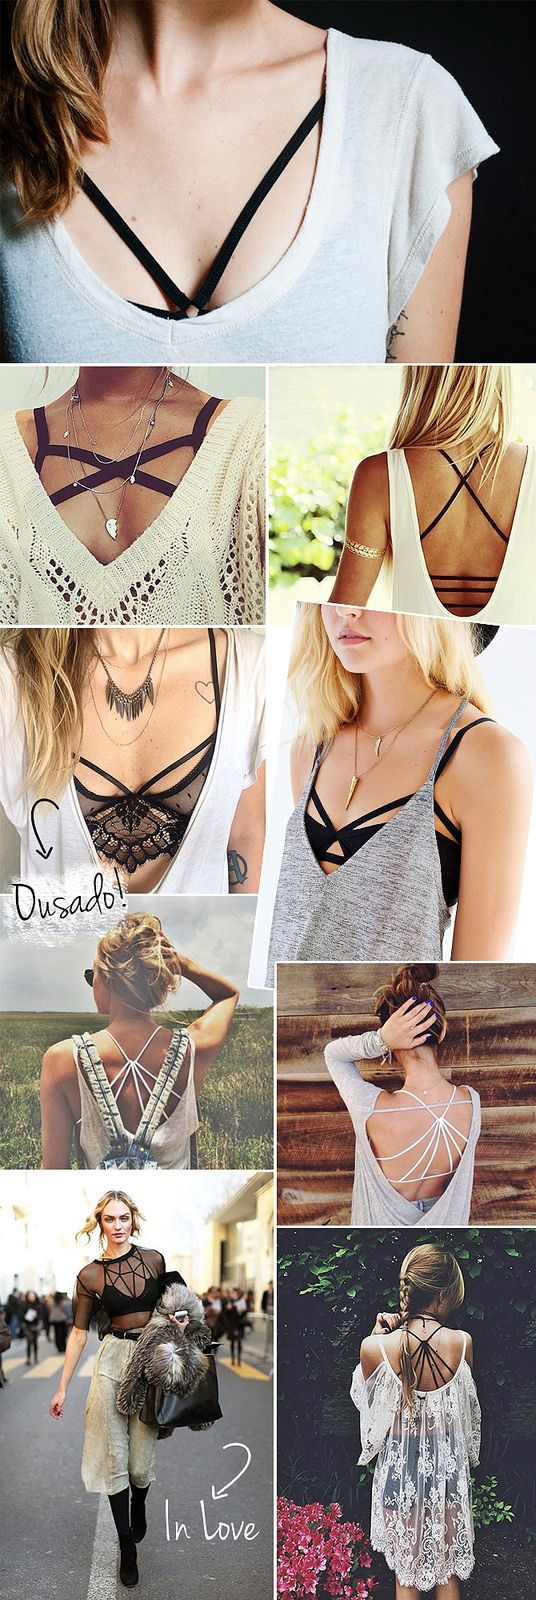 1c3fea9d9b325 How to style a strappy bra (think of it as the fishnet trend for your torso)